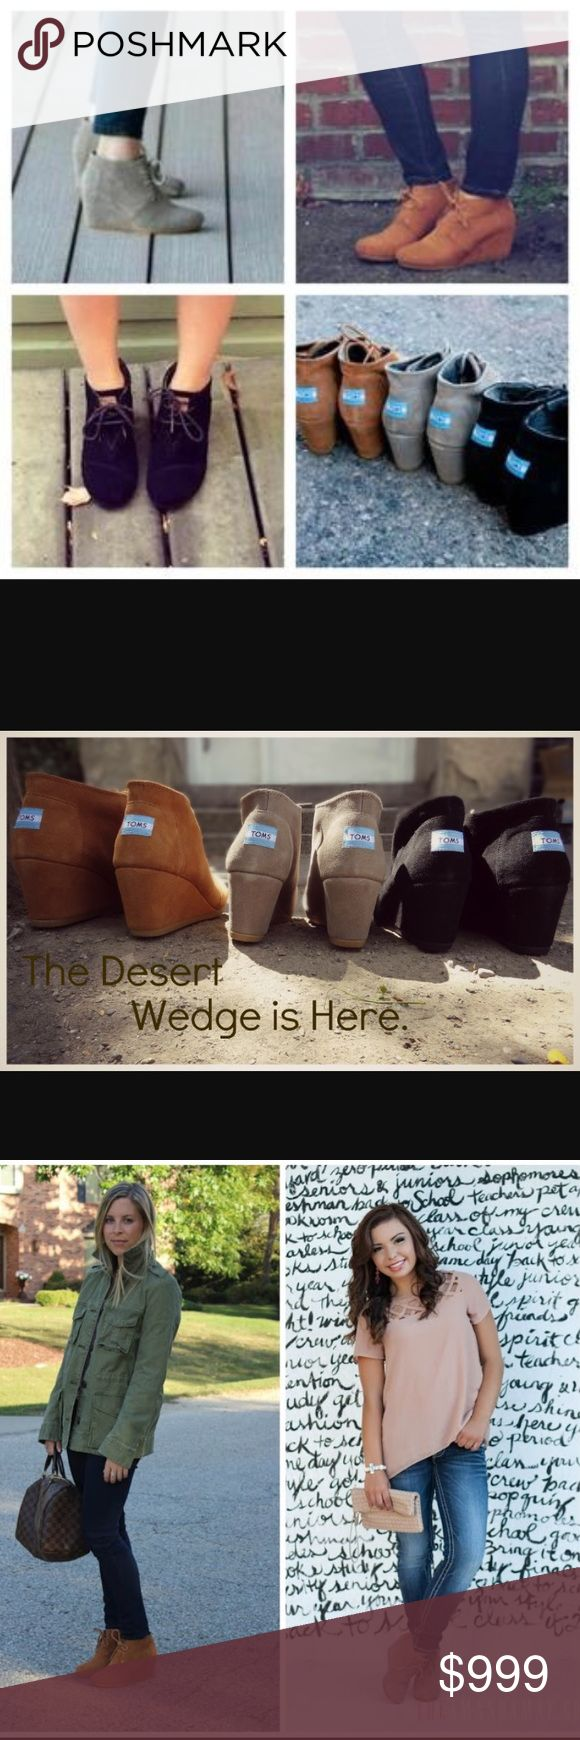 Inspiration for TOMS Desert Wedges A few more pictures to show how awesome TOMS Desert wedge booties are, and provide some visual styling ideas. Shoes Ankle Boots & Booties